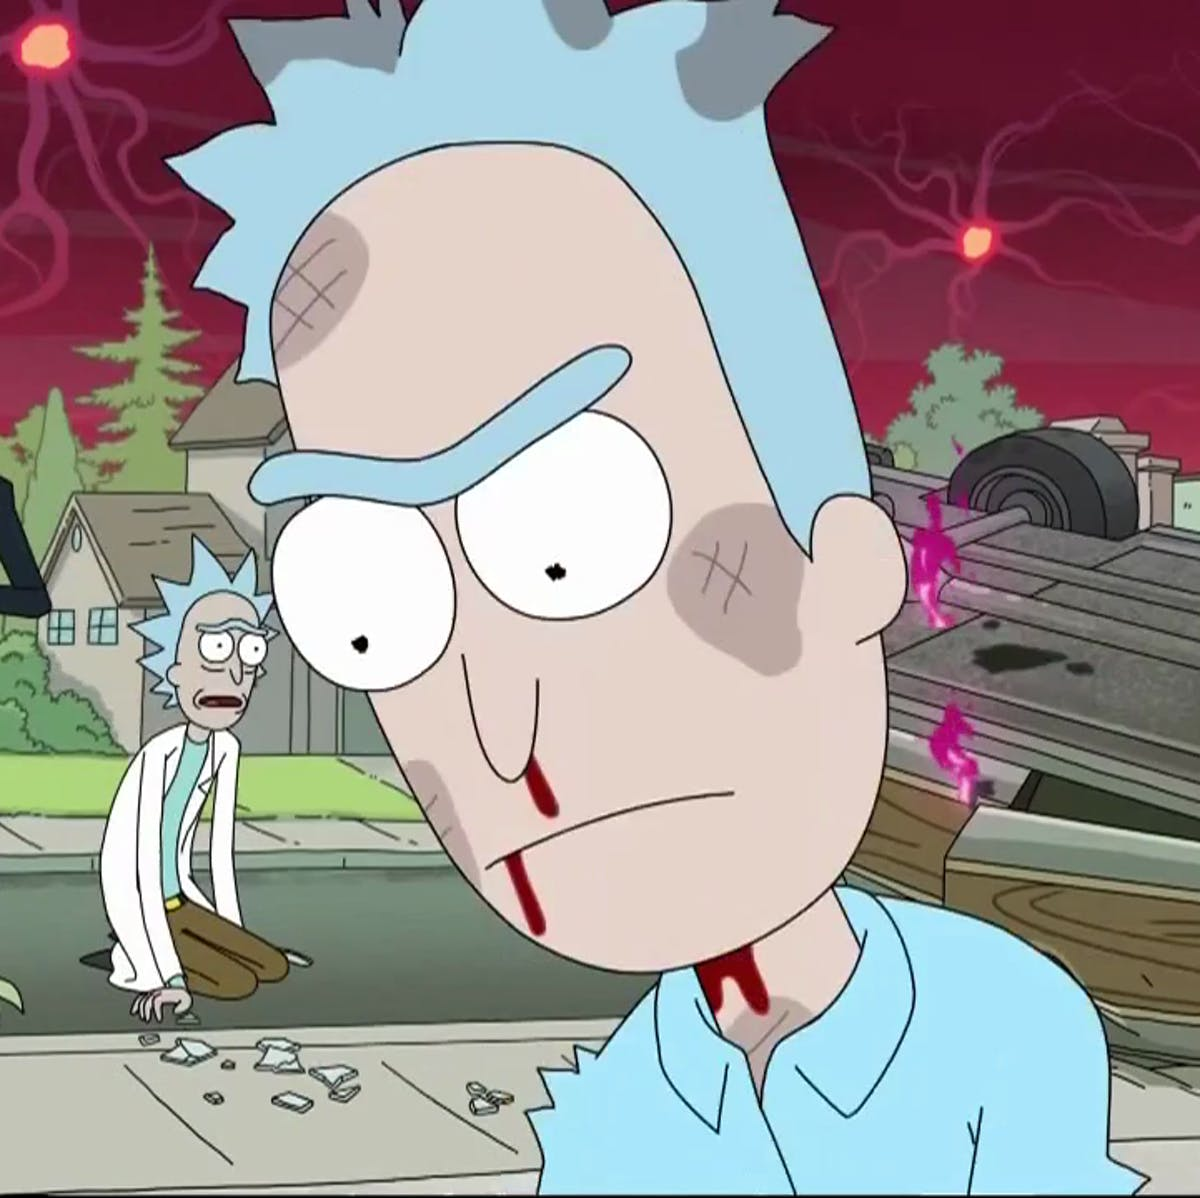 Brain-melting 'Rick and Morty' theory explains how the multiverse was born